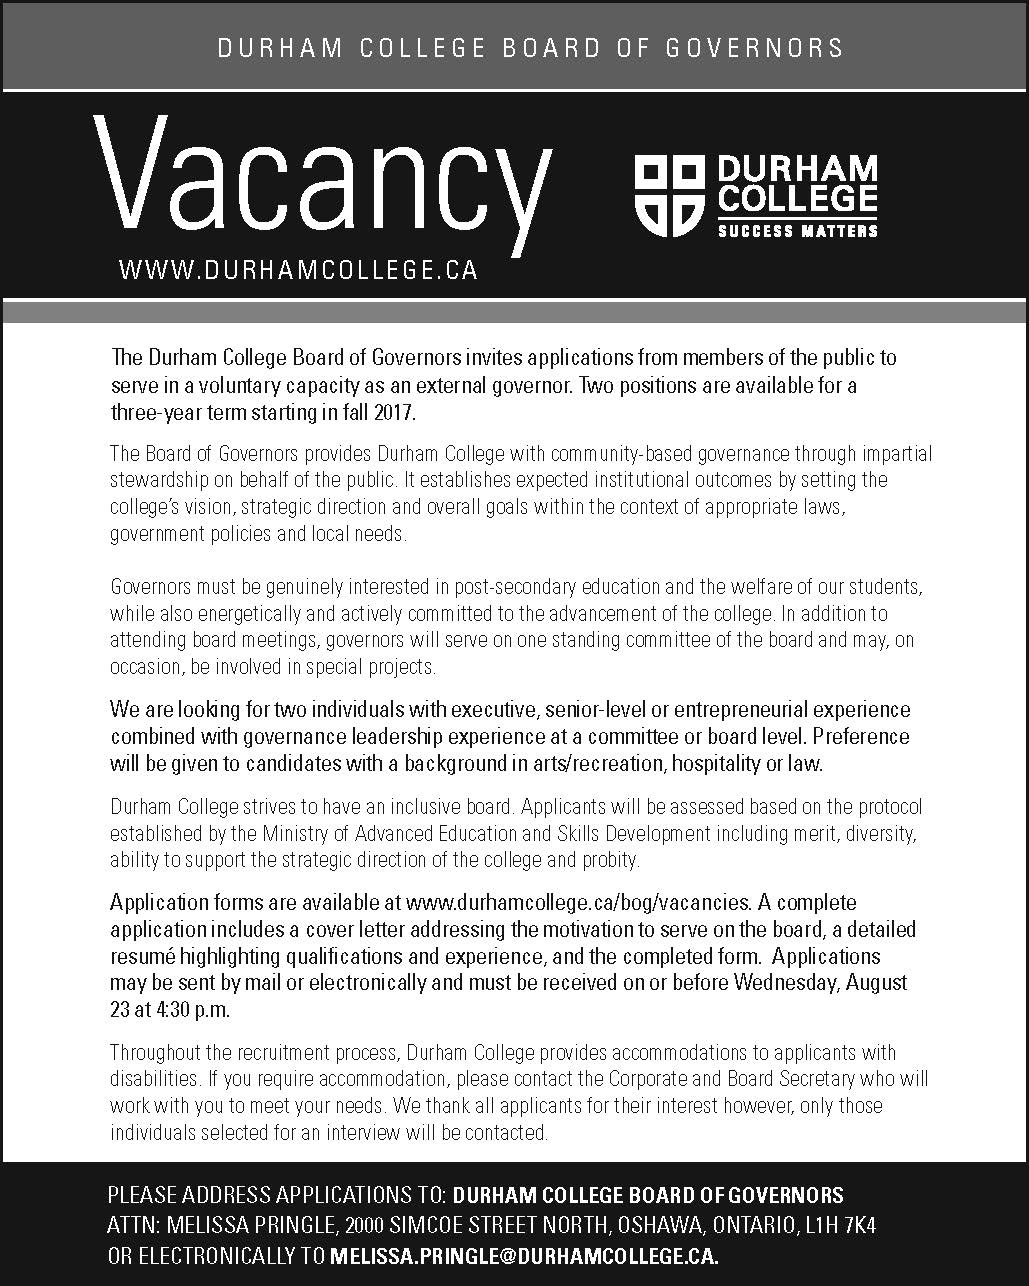 Durham College Board of Governors looking for interested applicants